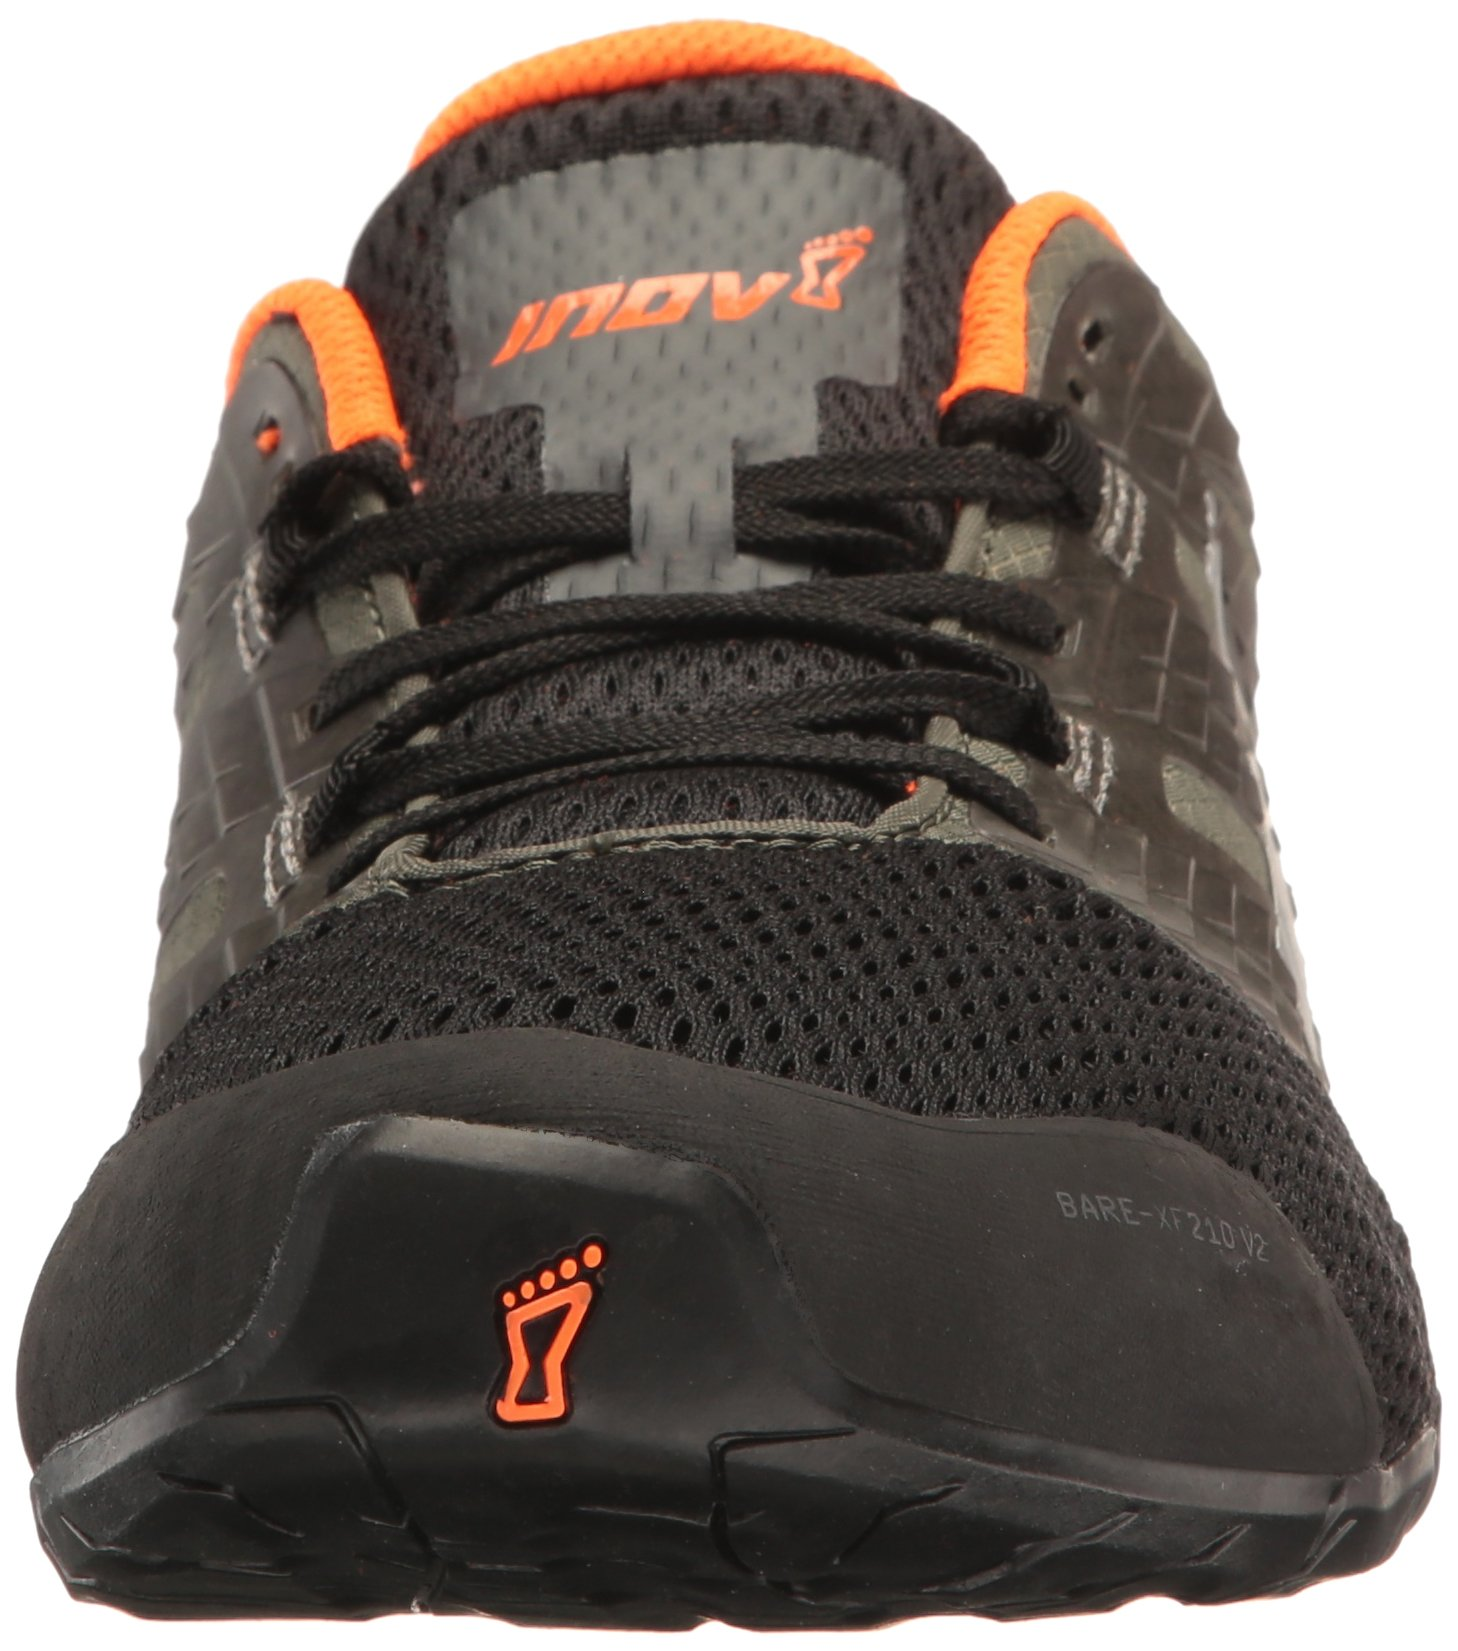 Inov-8 Men's Bare-XF 210 v2 (M) Cross Trainer Grey/Black/Orange 9 D US by Inov-8 (Image #4)